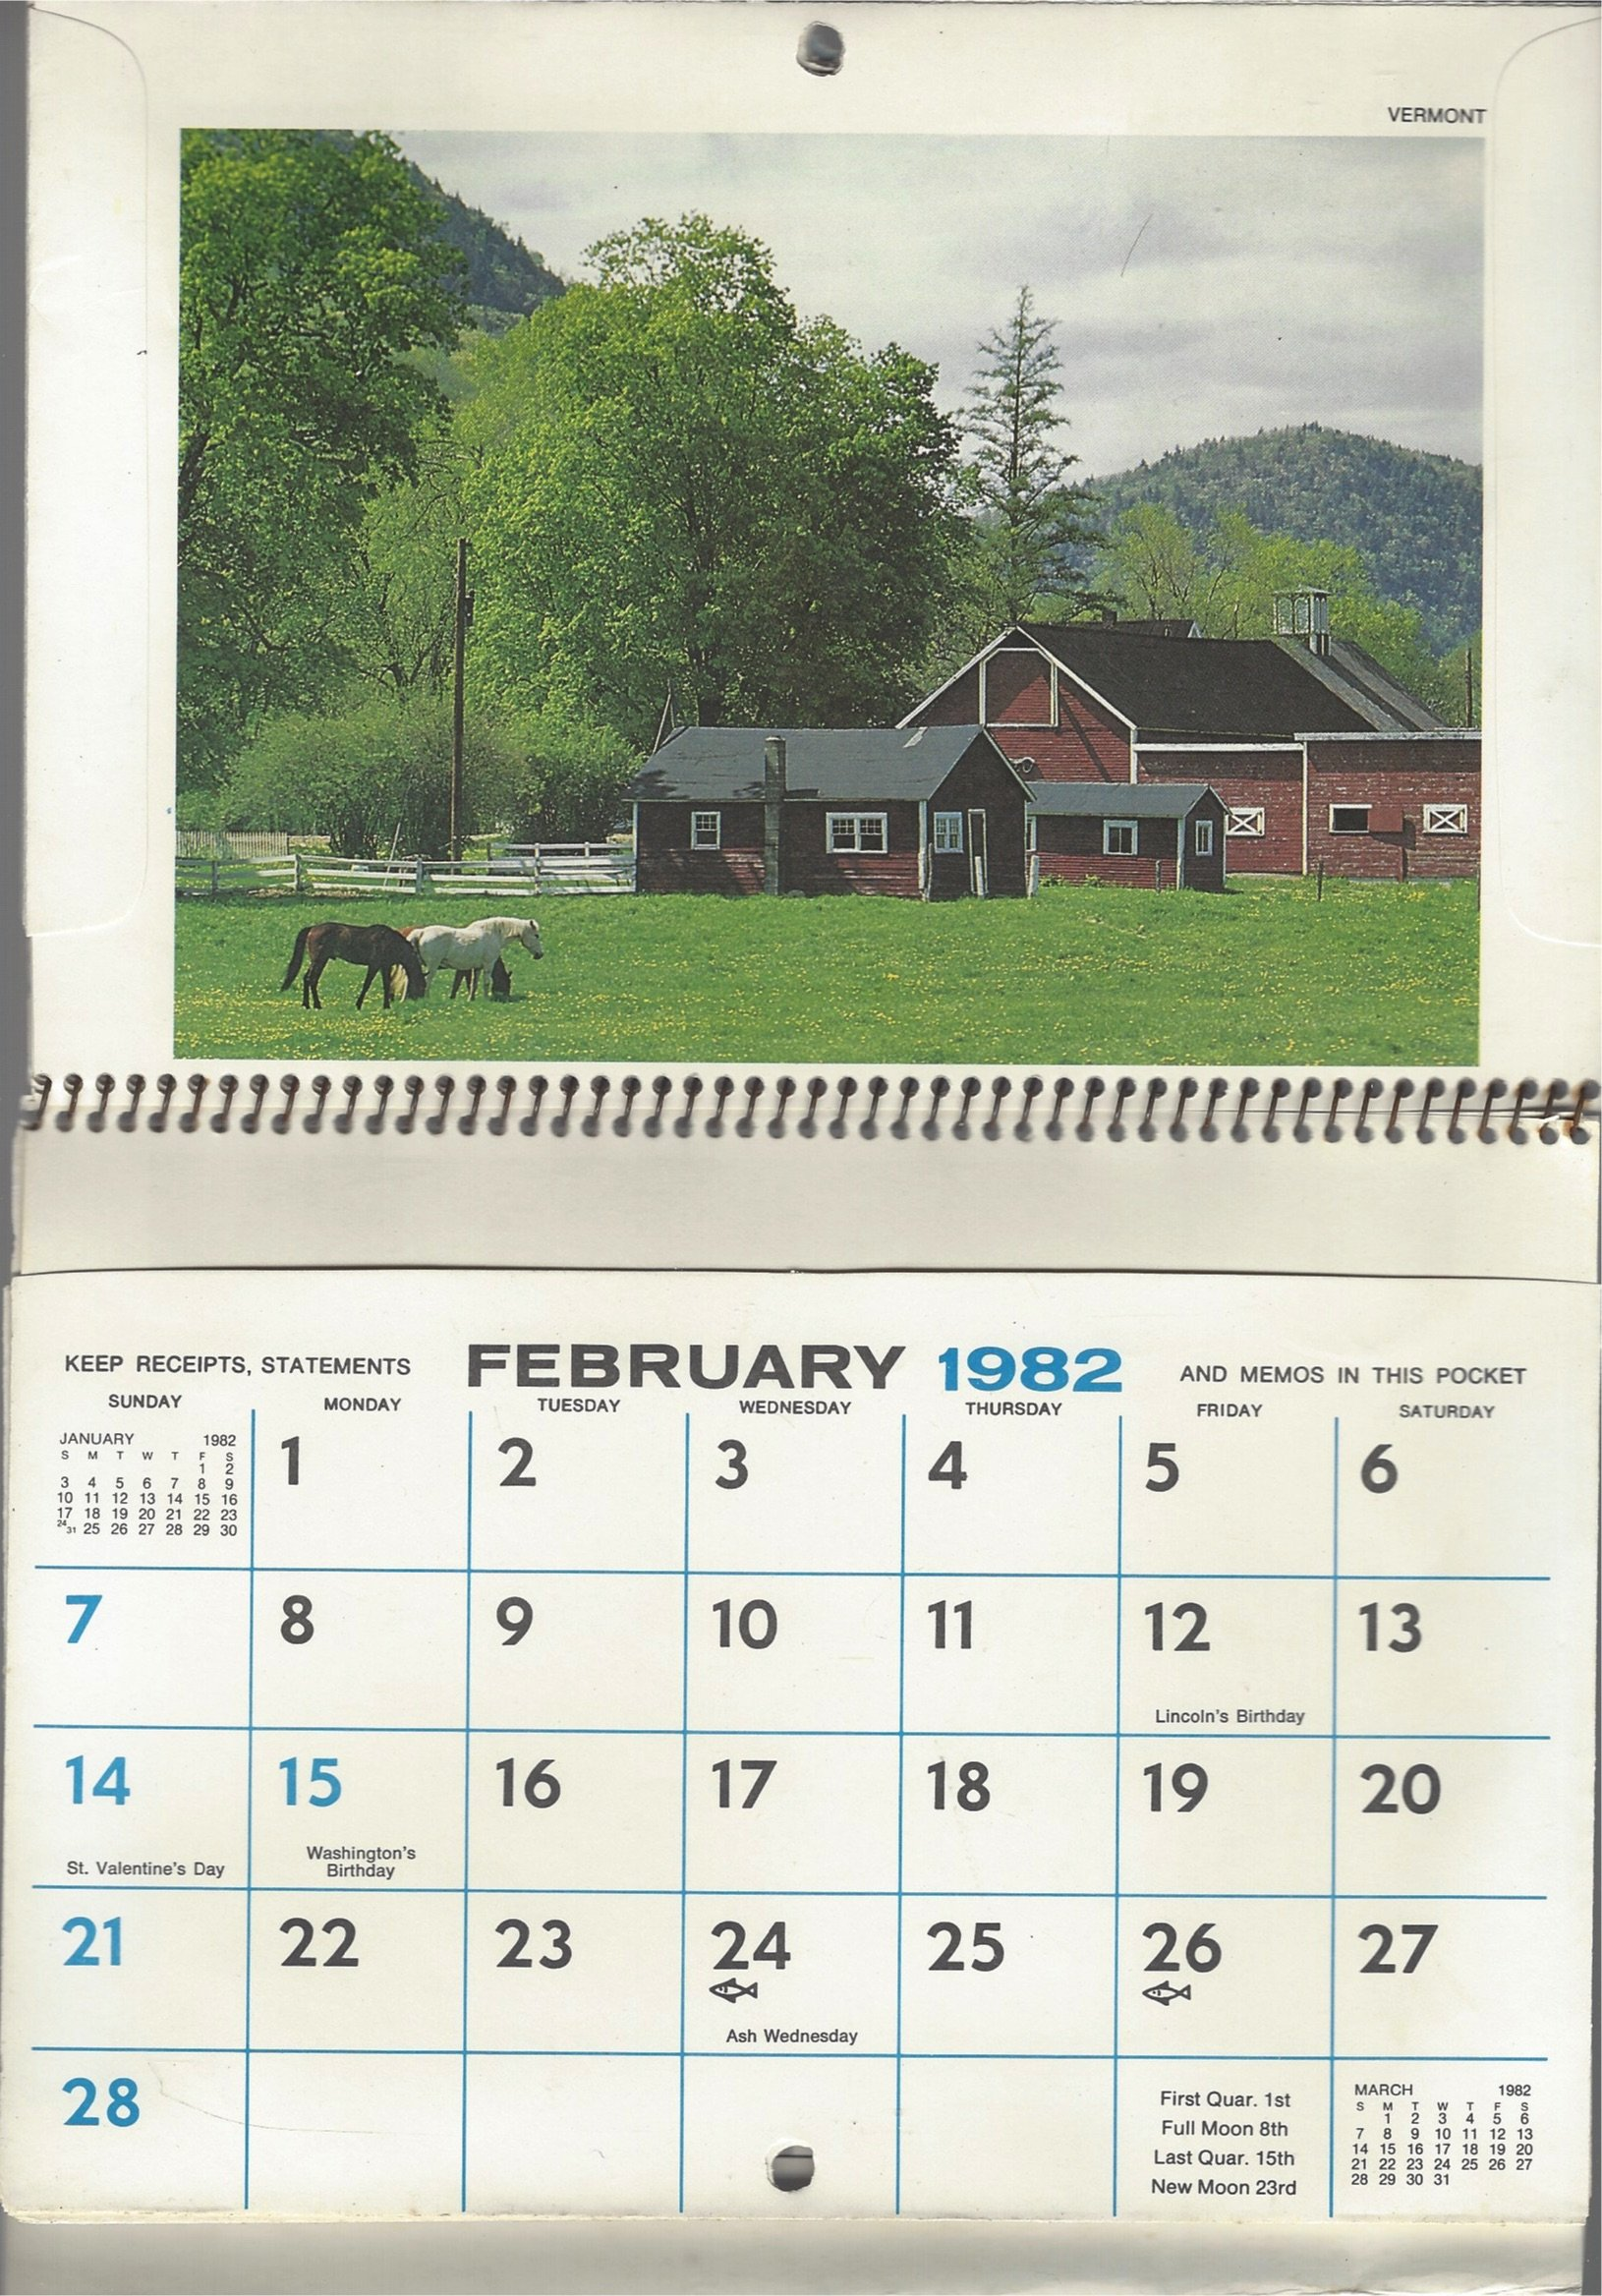 Tps Calendar.Amazon Com A 12 Month Wall Calendar For 1982 By Suburban Propane